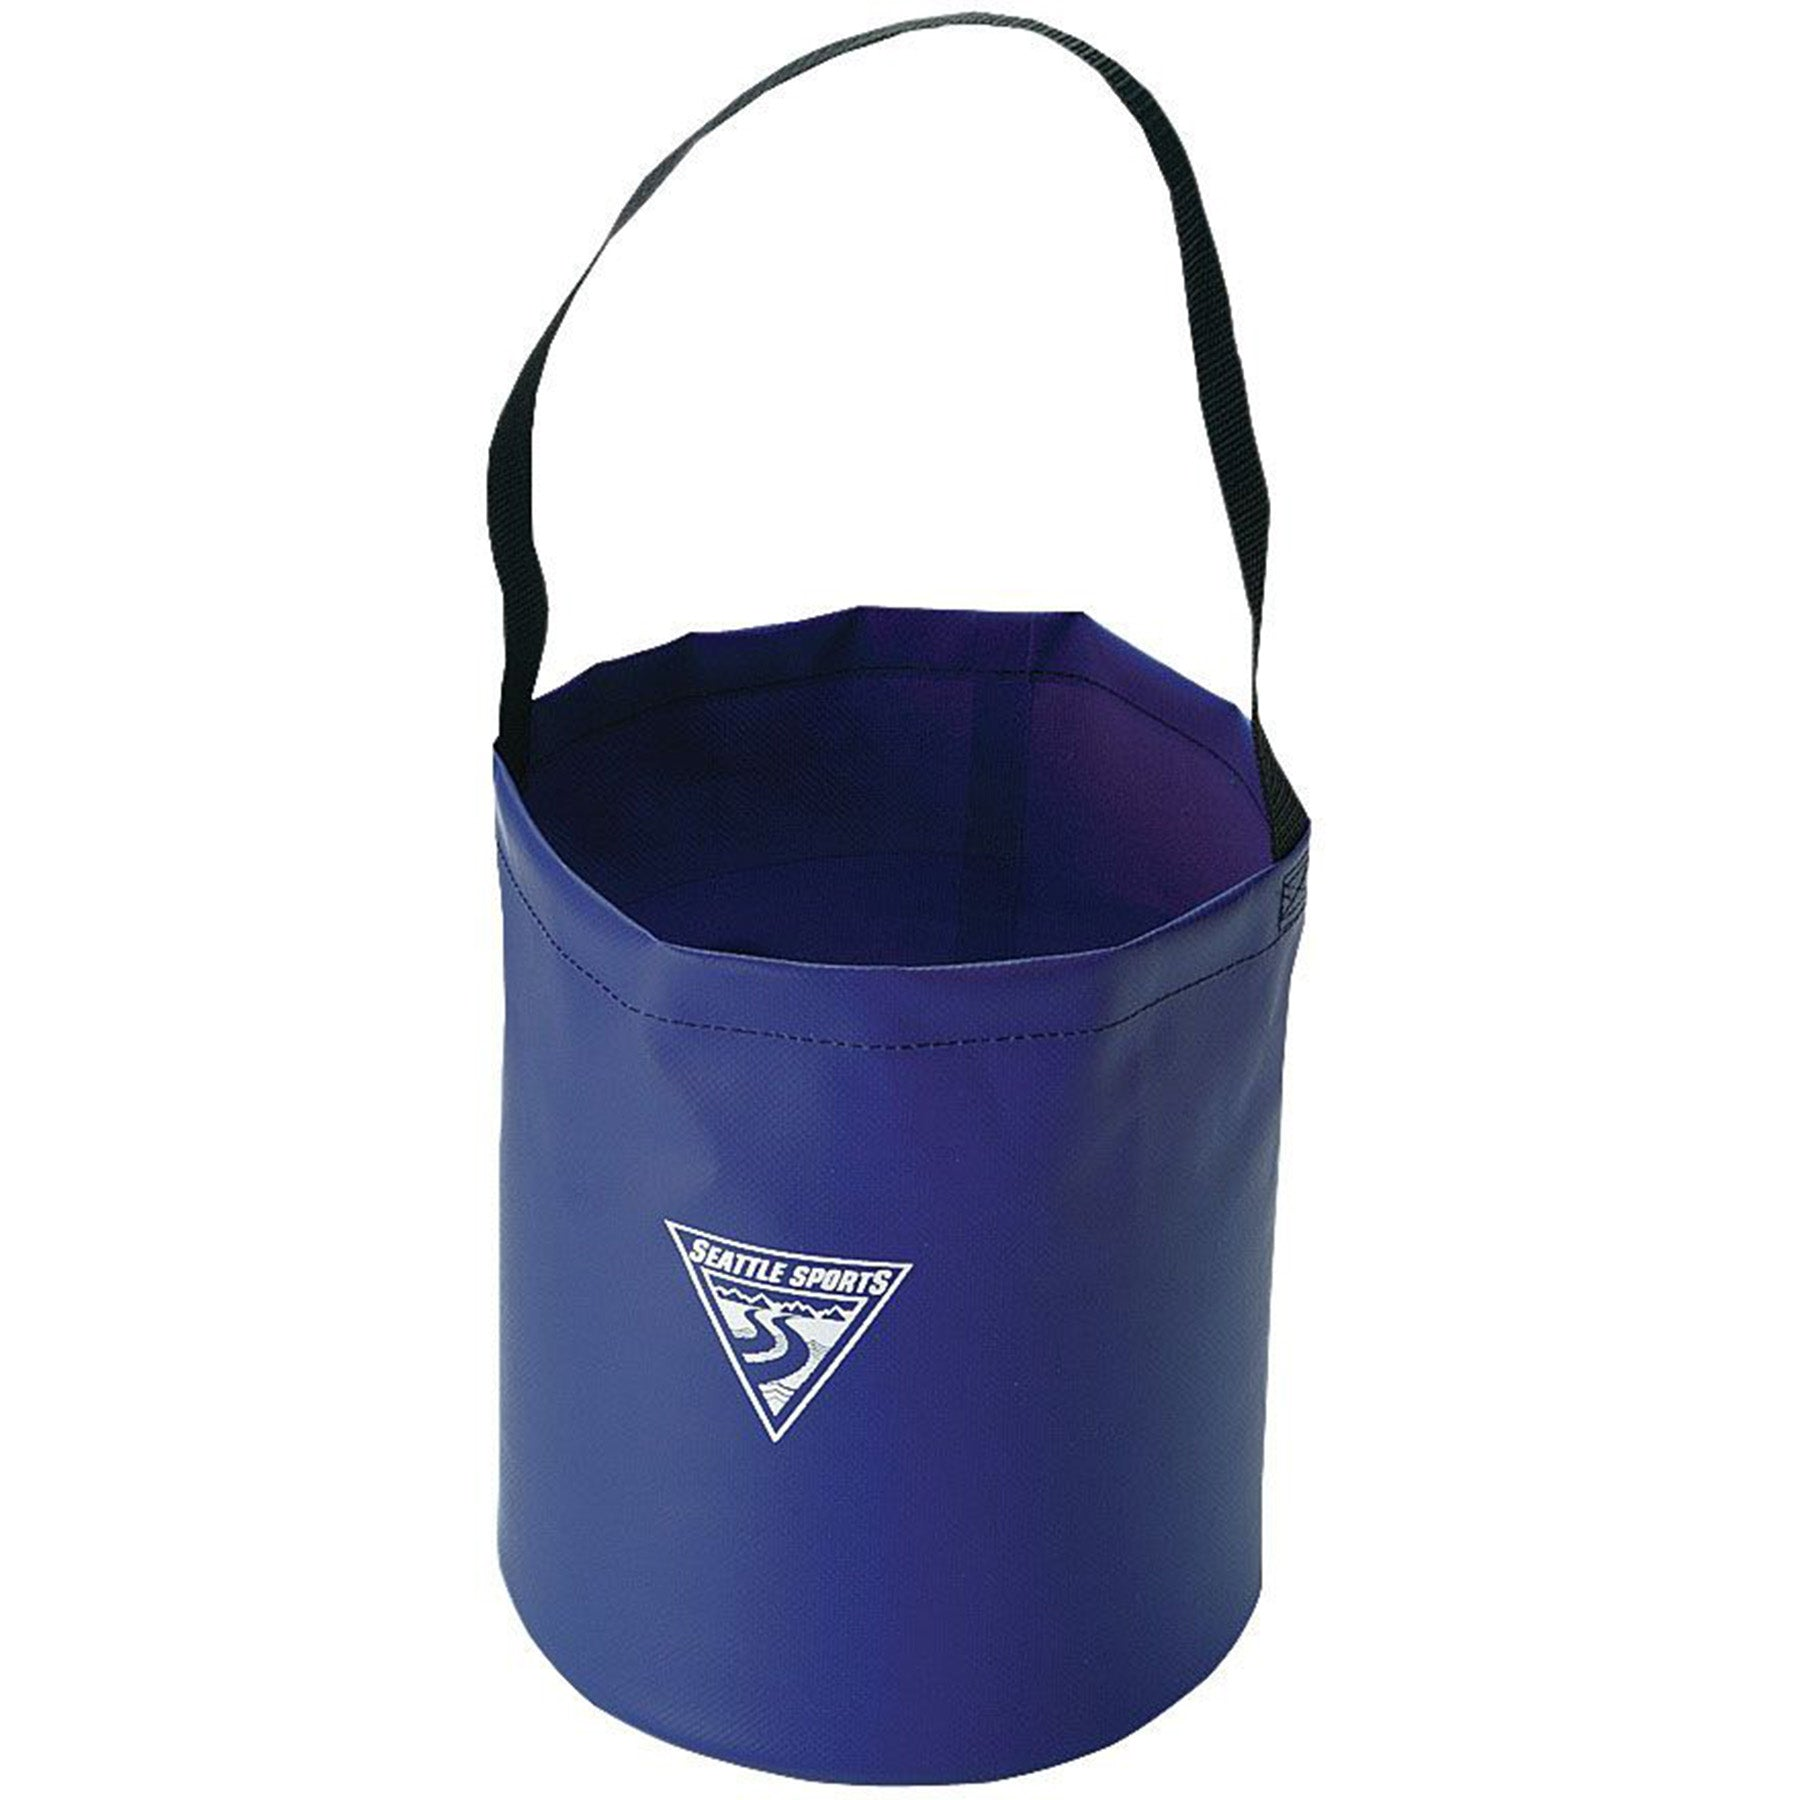 the camp bucket shown standing up as if full of water